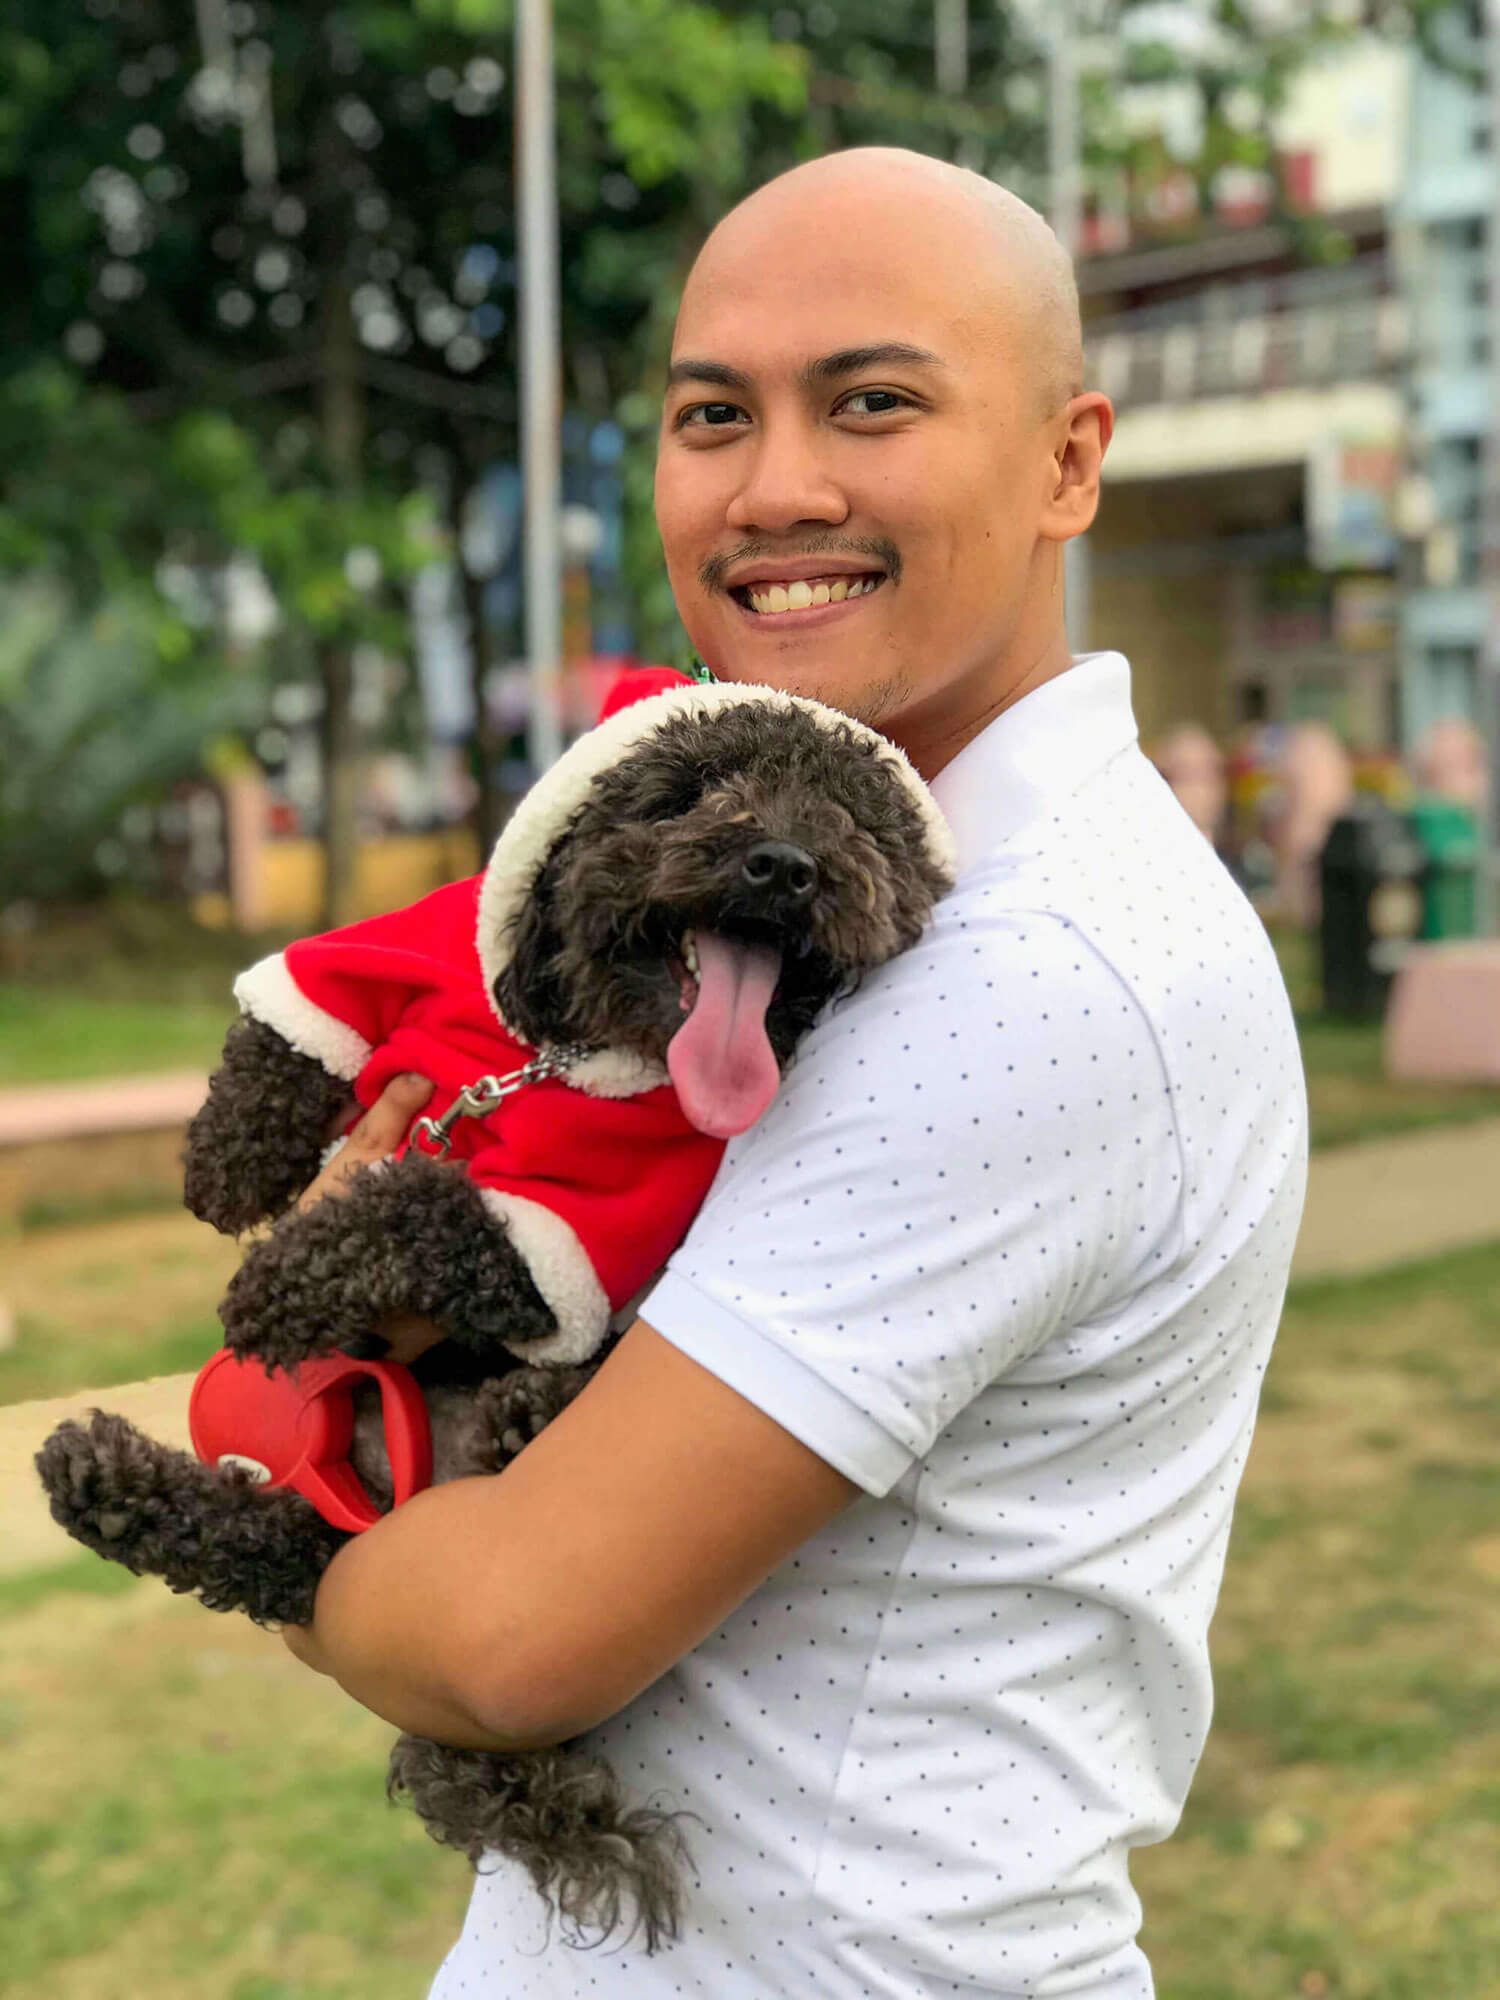 Eli with his cute black poodle, Miggy